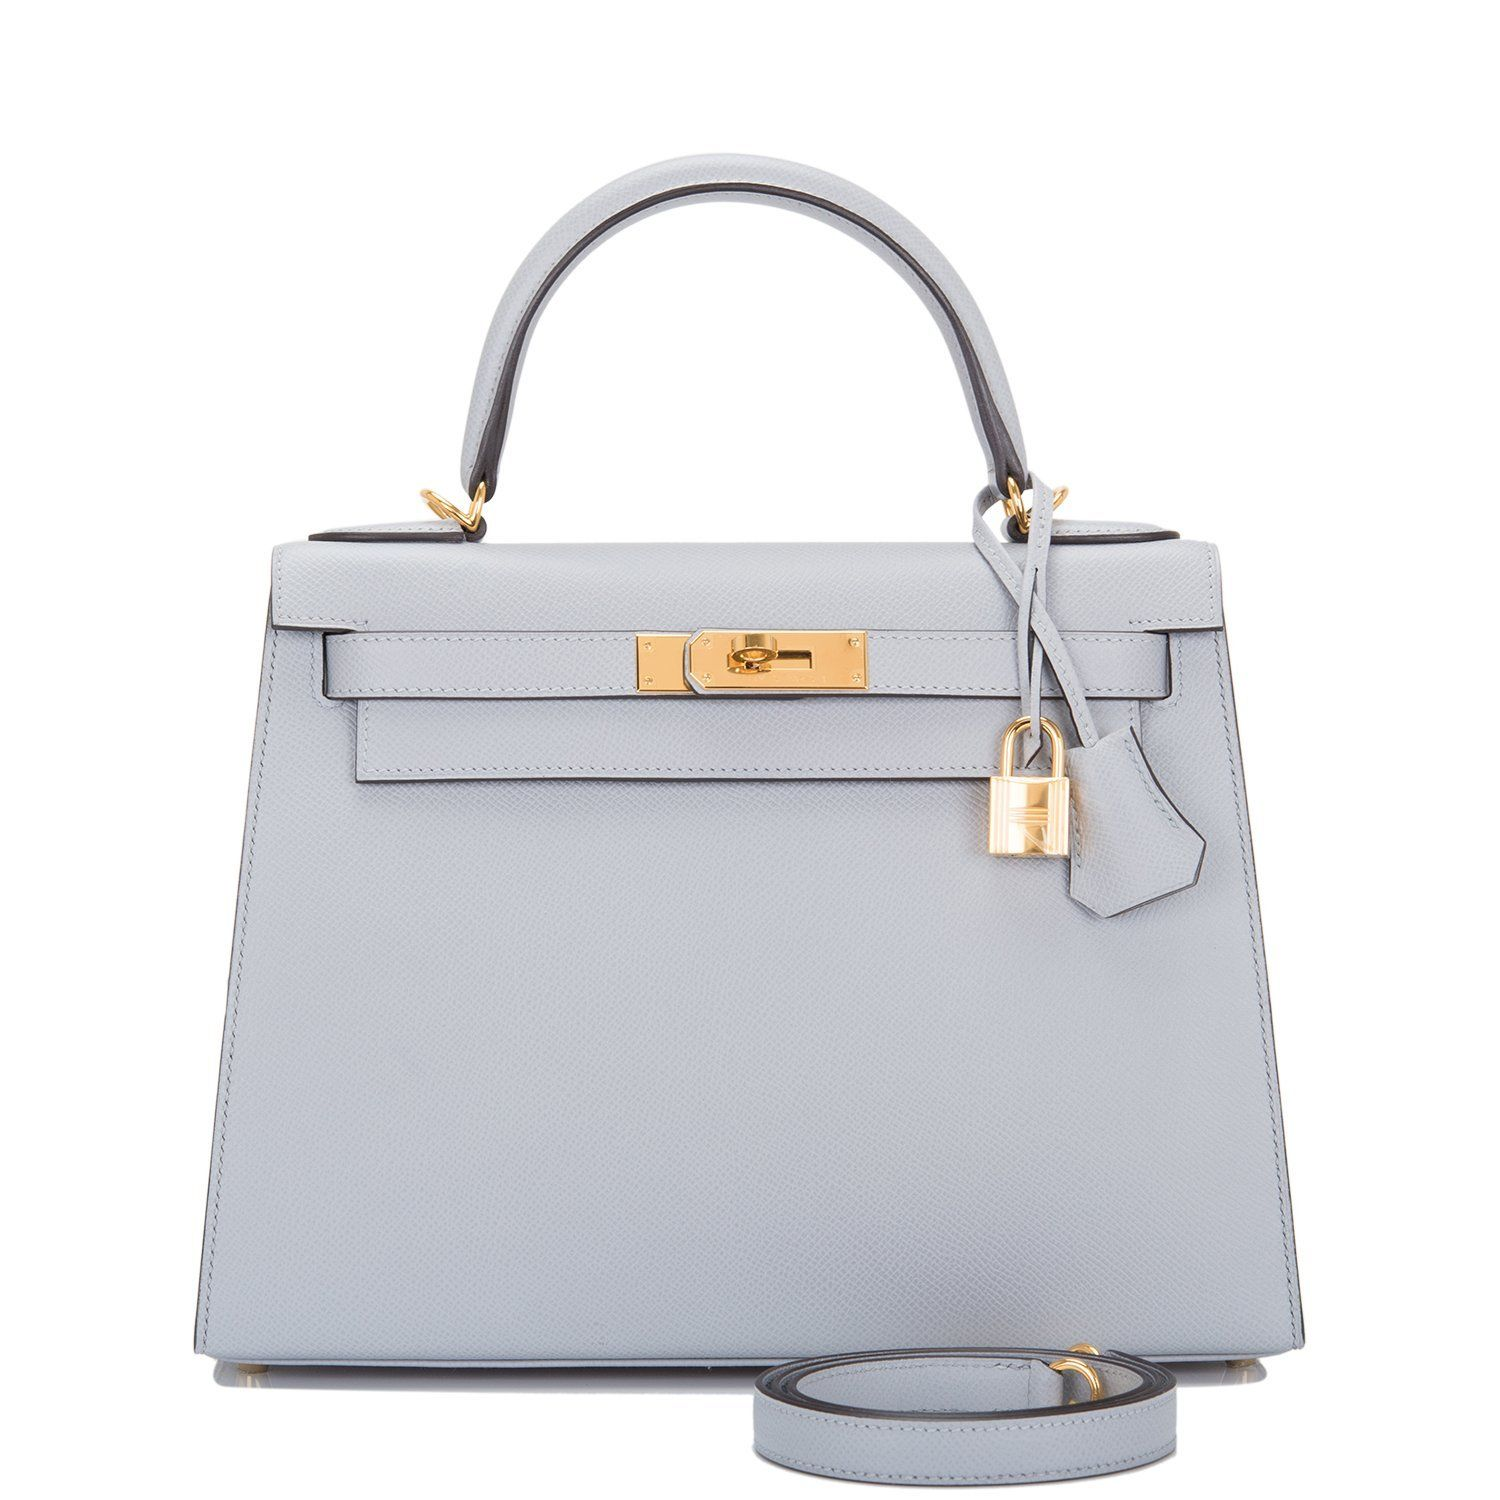 f8d4d80b7923 hermès Kelly 28 sellier in  bleu glacier  epsom with palladium gold  hardware.